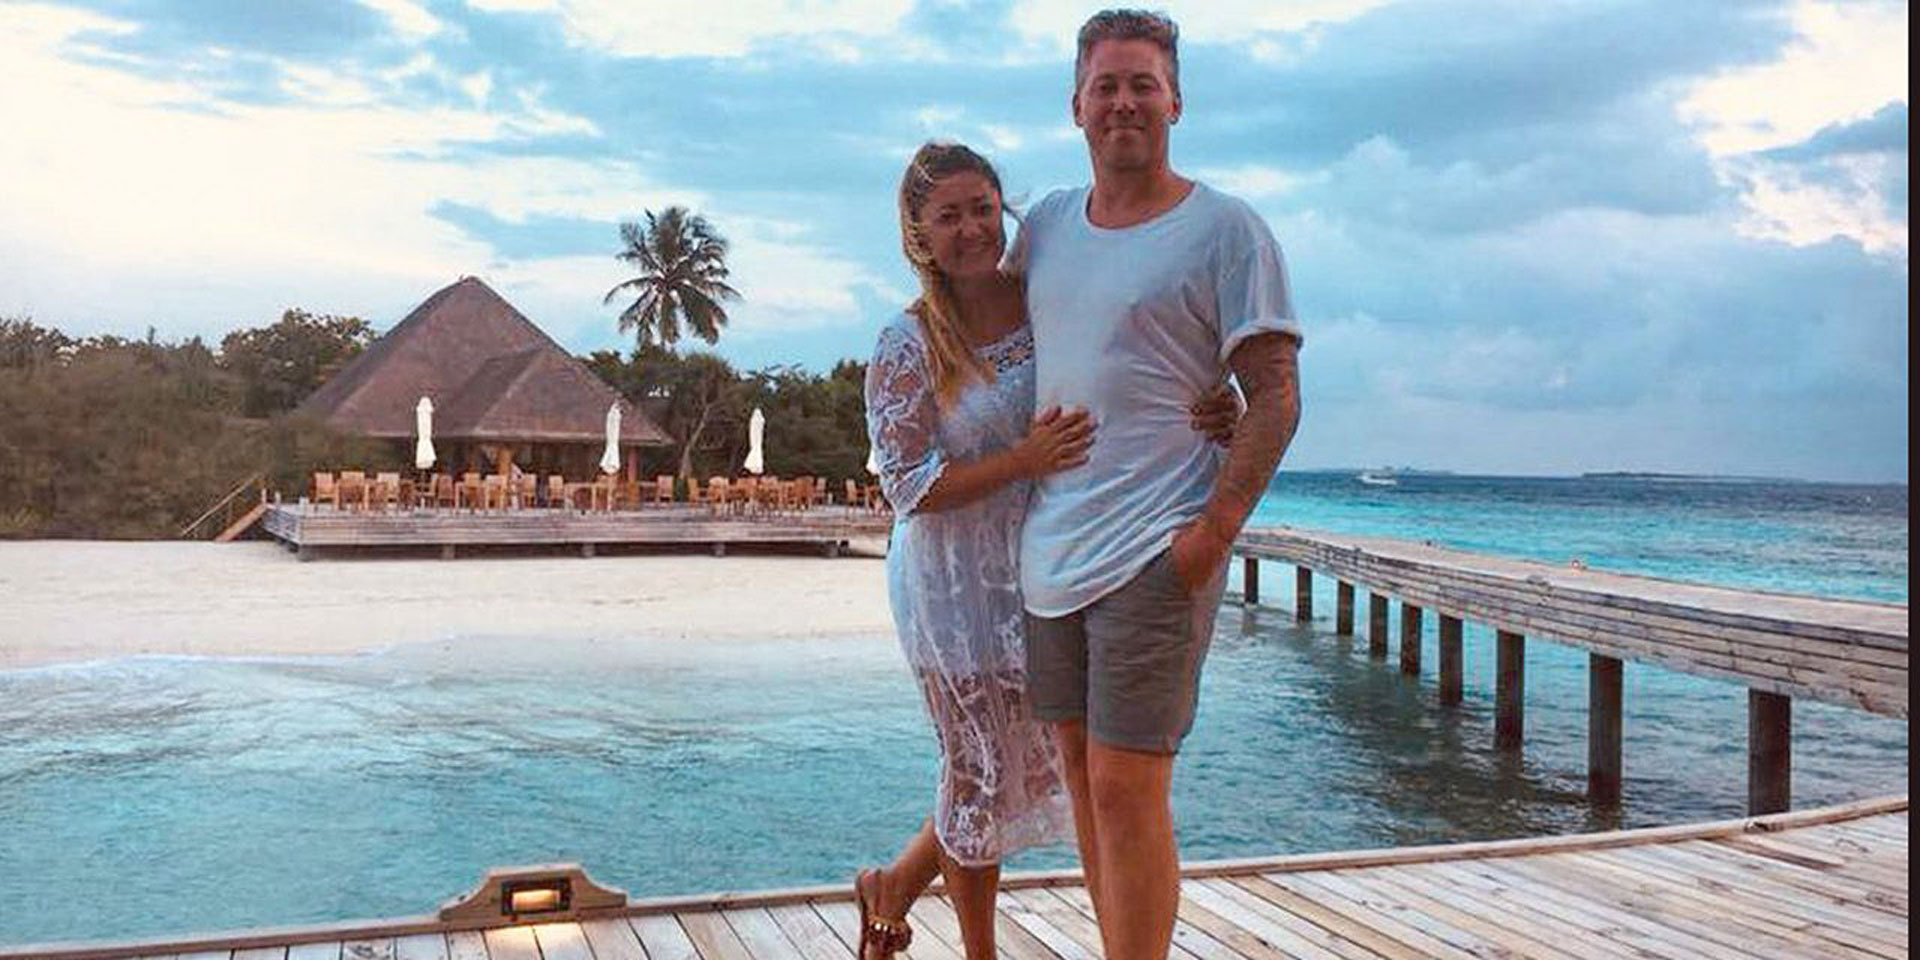 How a drunk couple on their honeymoon bought a hotel